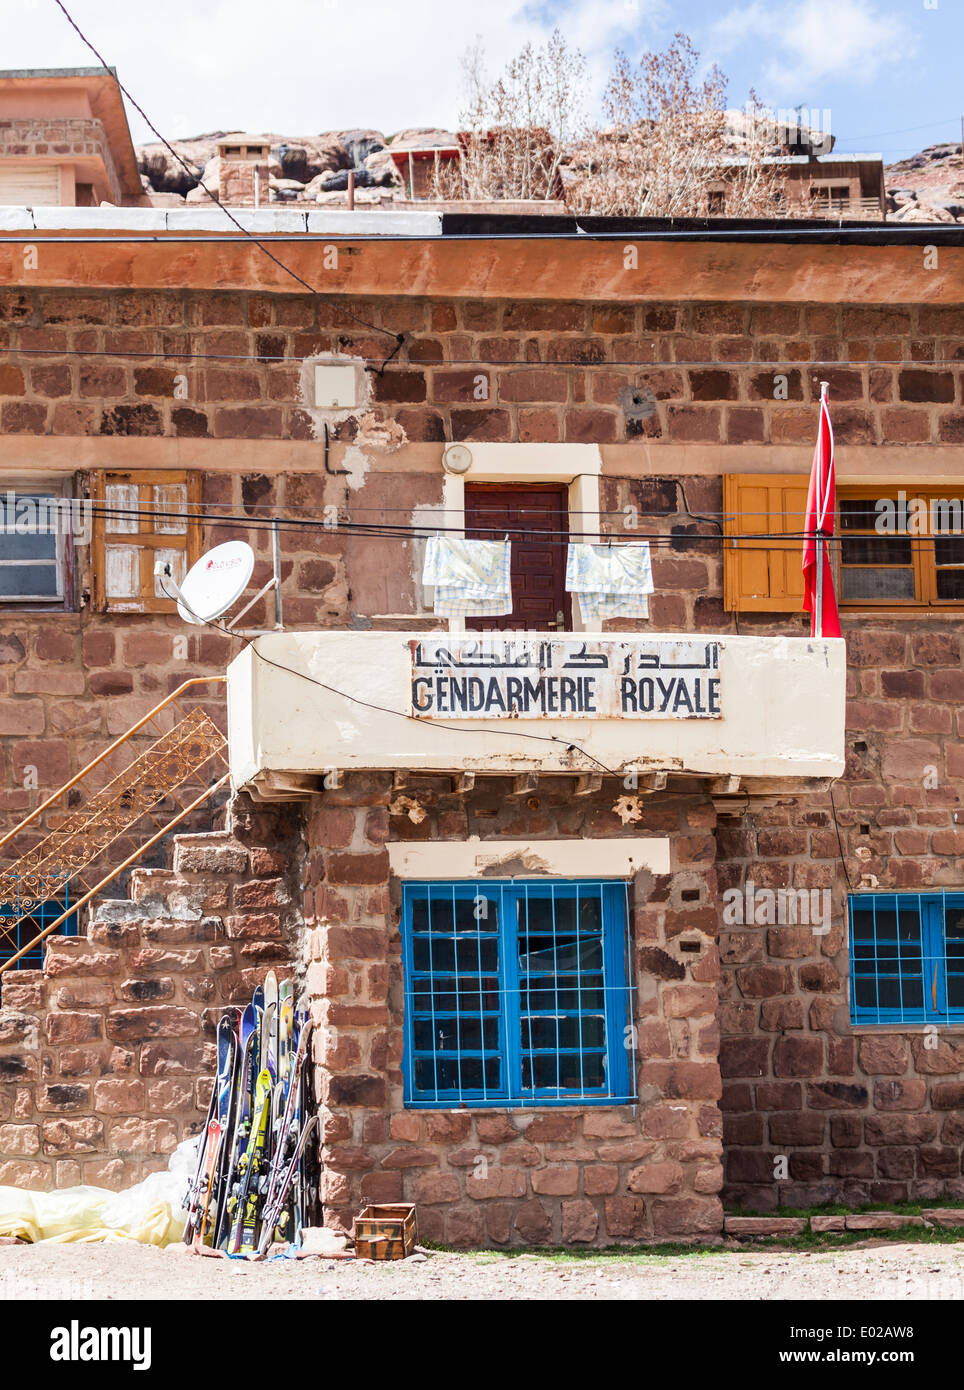 Gendarmerie Royale, police station in Oikaimeden in the High Atlas mountains of Morocco, North Africa - Stock Image